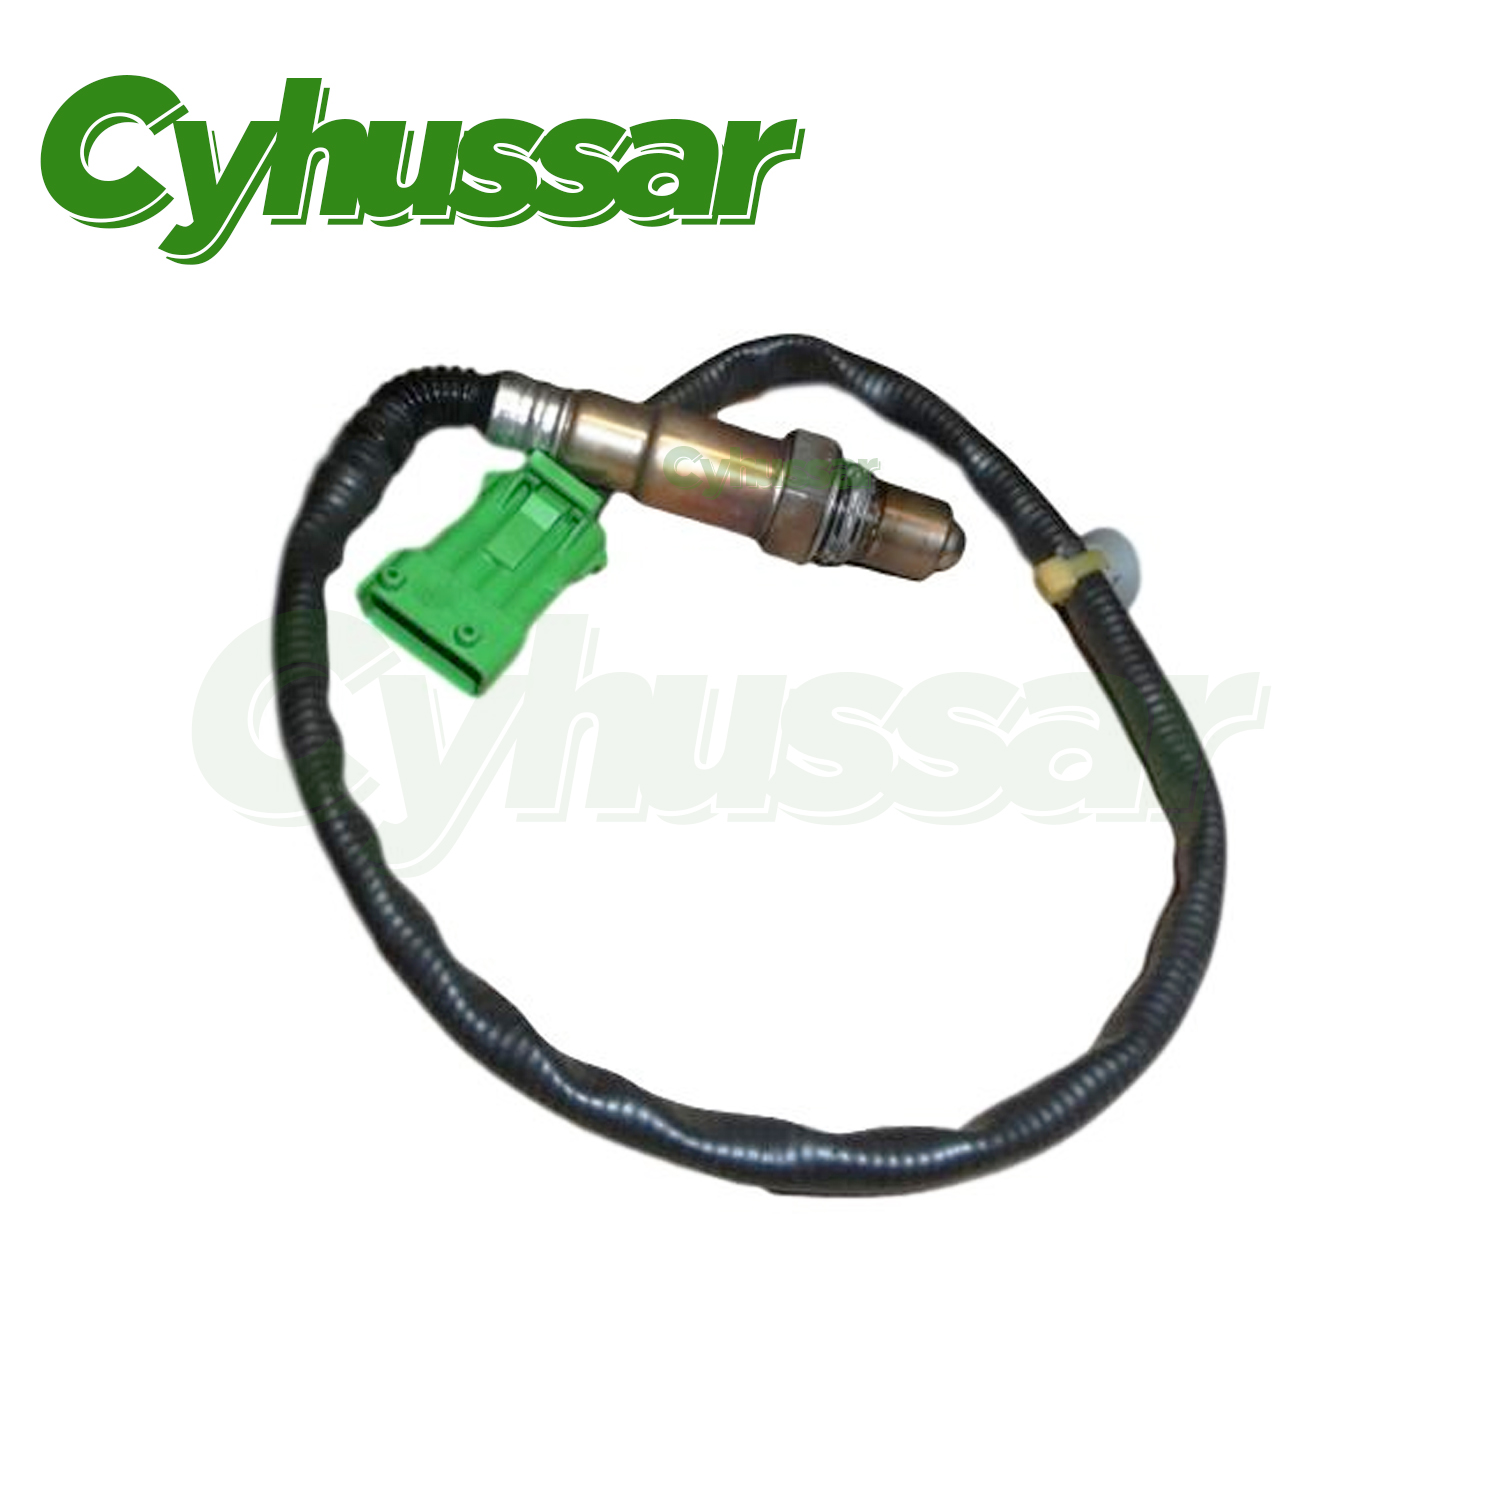 O2 Oxygen Sensor Fit For CITROEN C4 C5 DS3 DS4 DS5 PEUGEOT 207 208 308 508 1.6 0258010081 1618HC Upstream Front 4 Wires LambdaO2 Oxygen Sensor Fit For CITROEN C4 C5 DS3 DS4 DS5 PEUGEOT 207 208 308 508 1.6 0258010081 1618HC Upstream Front 4 Wires Lambda